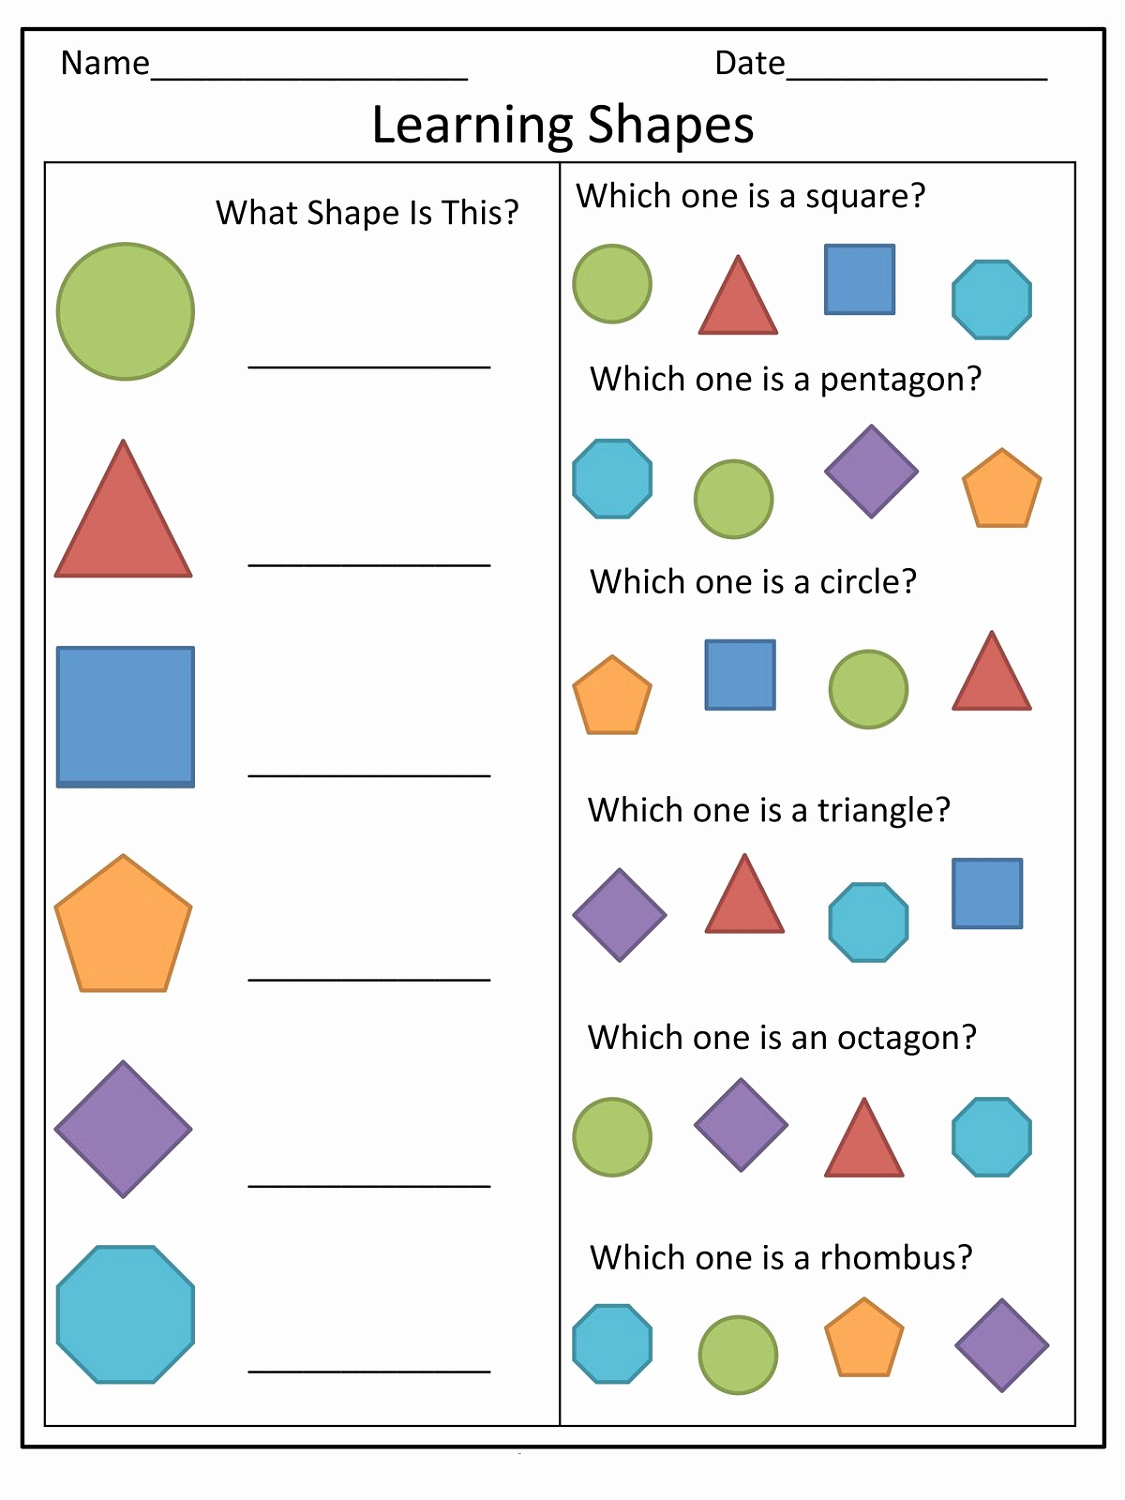 Identifying Shapes Worksheets Inspirational Basic Shapes Worksheets for Preschool